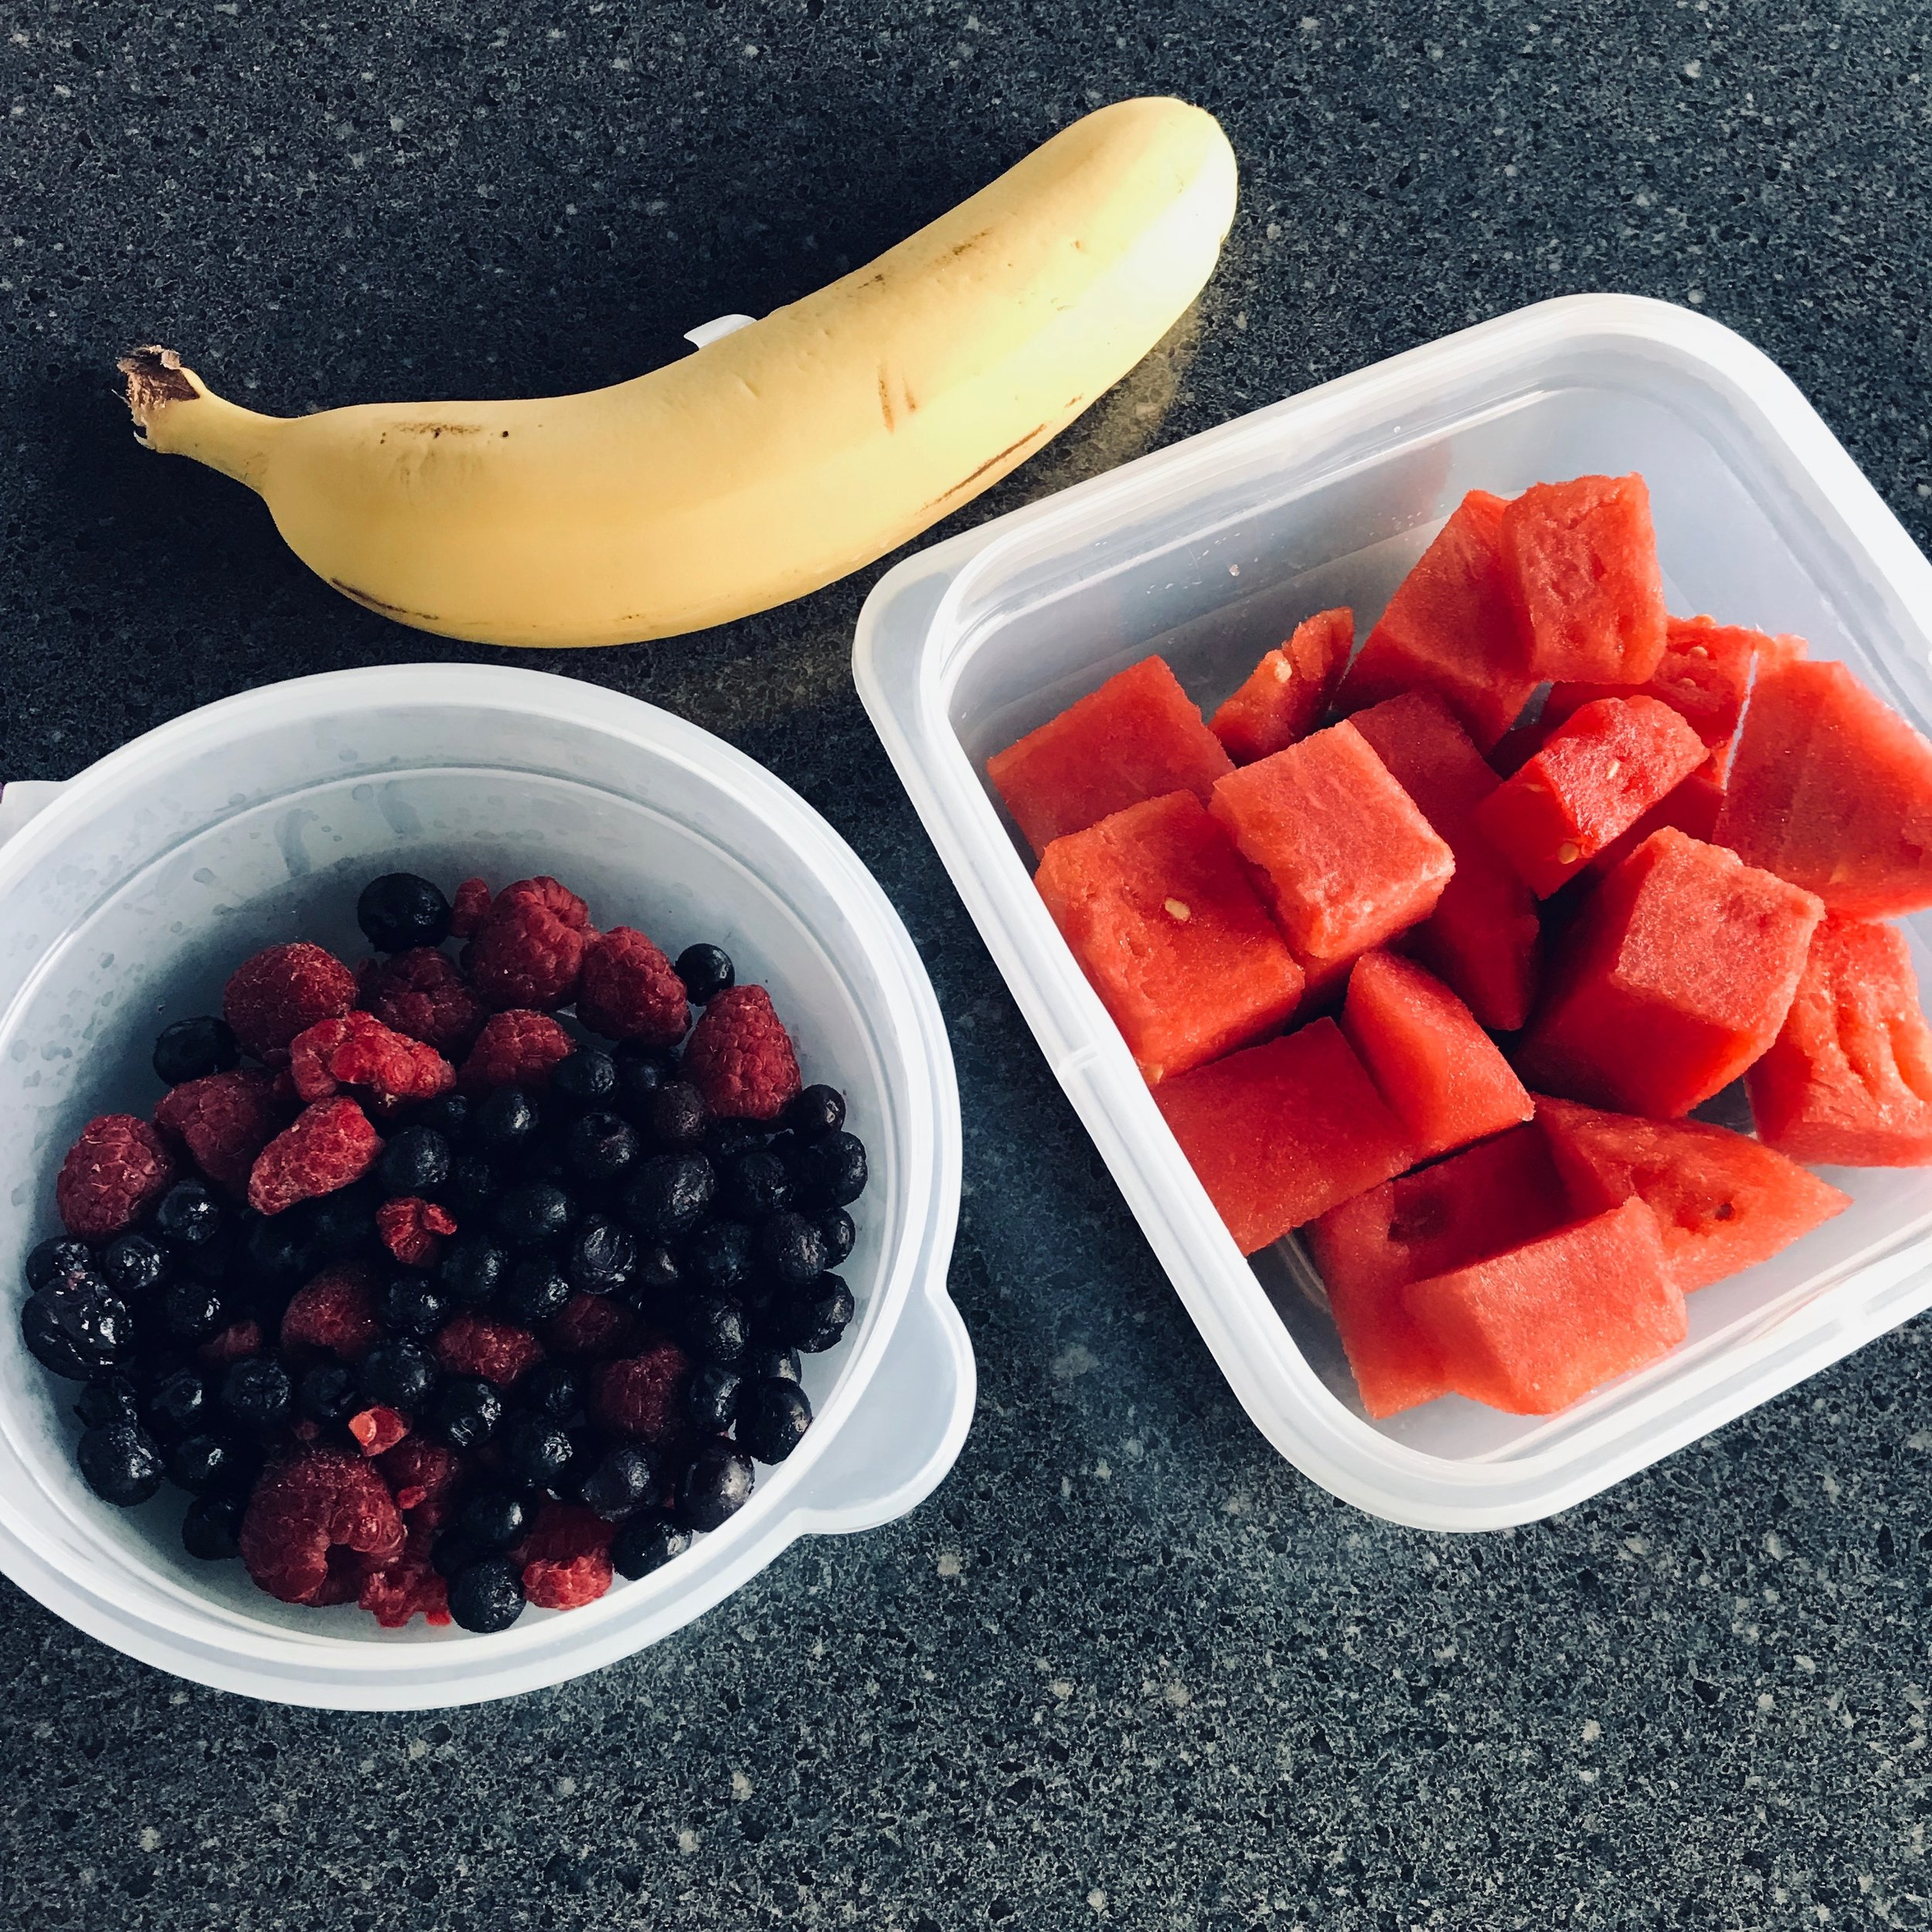 Frozen blueberries and raspberries, watermelon.